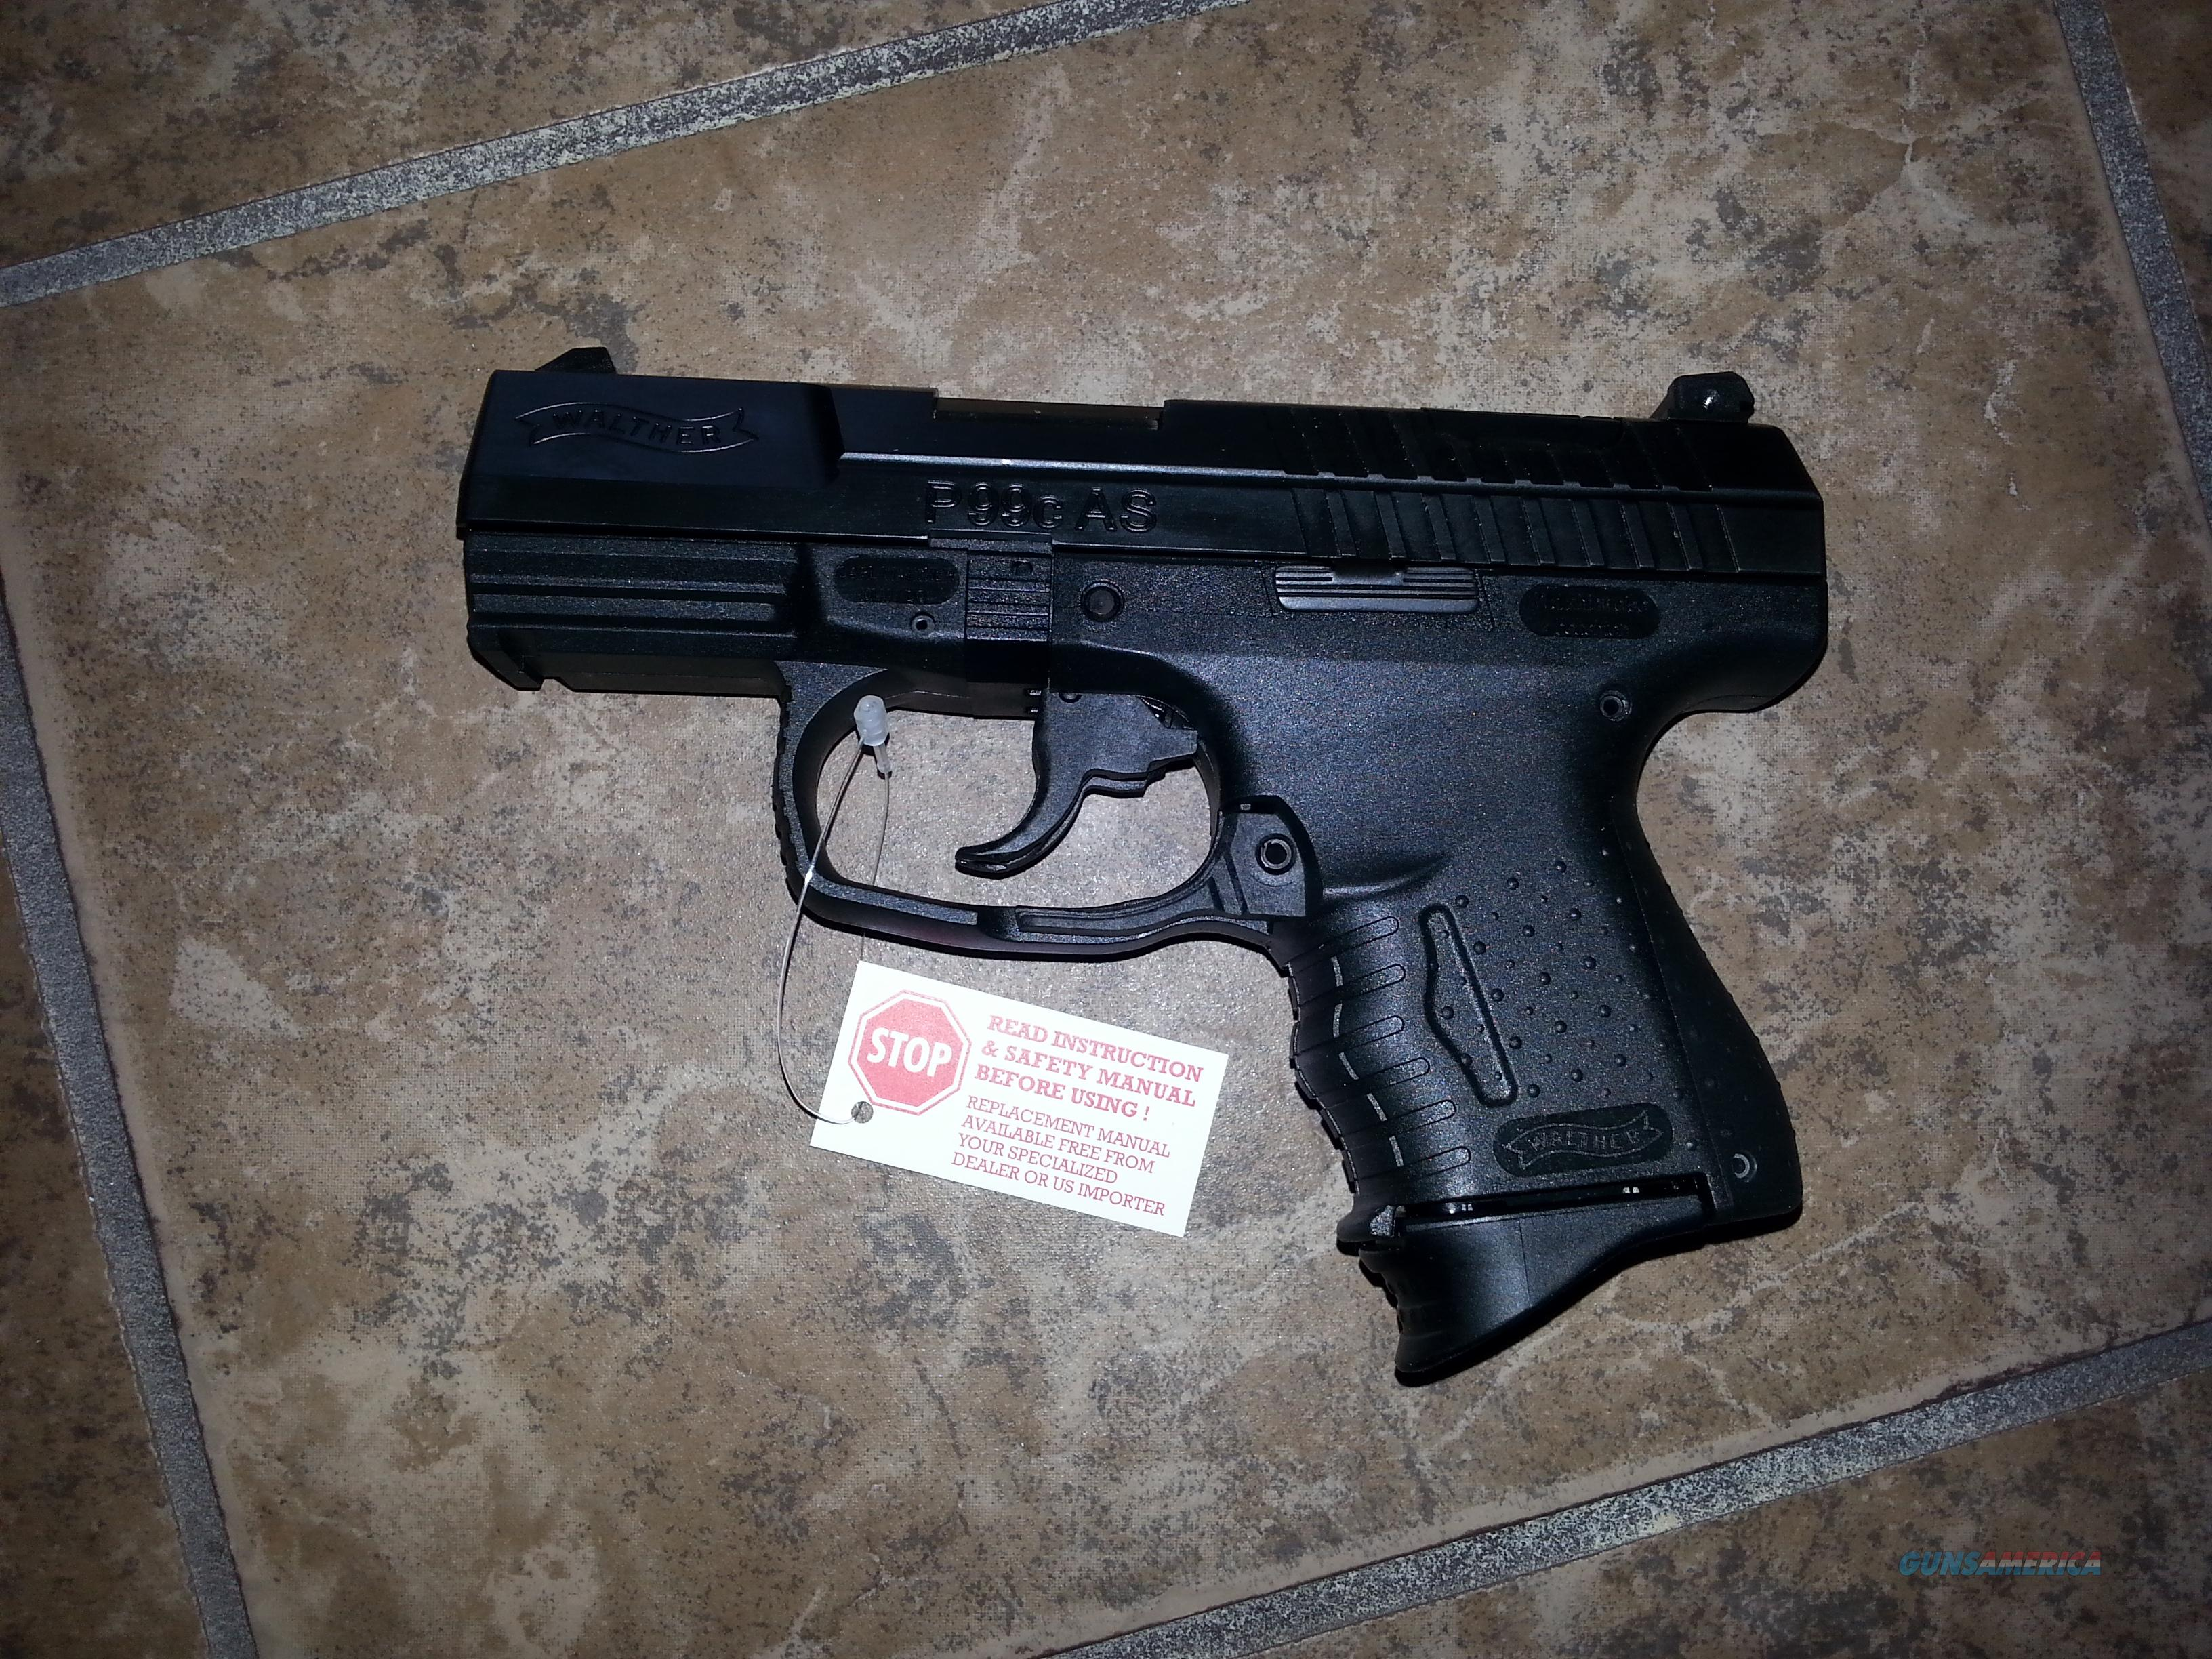 walther p99 s manual open source user manual u2022 rh dramatic varieties com Walther PPQ James Bond Walther P99